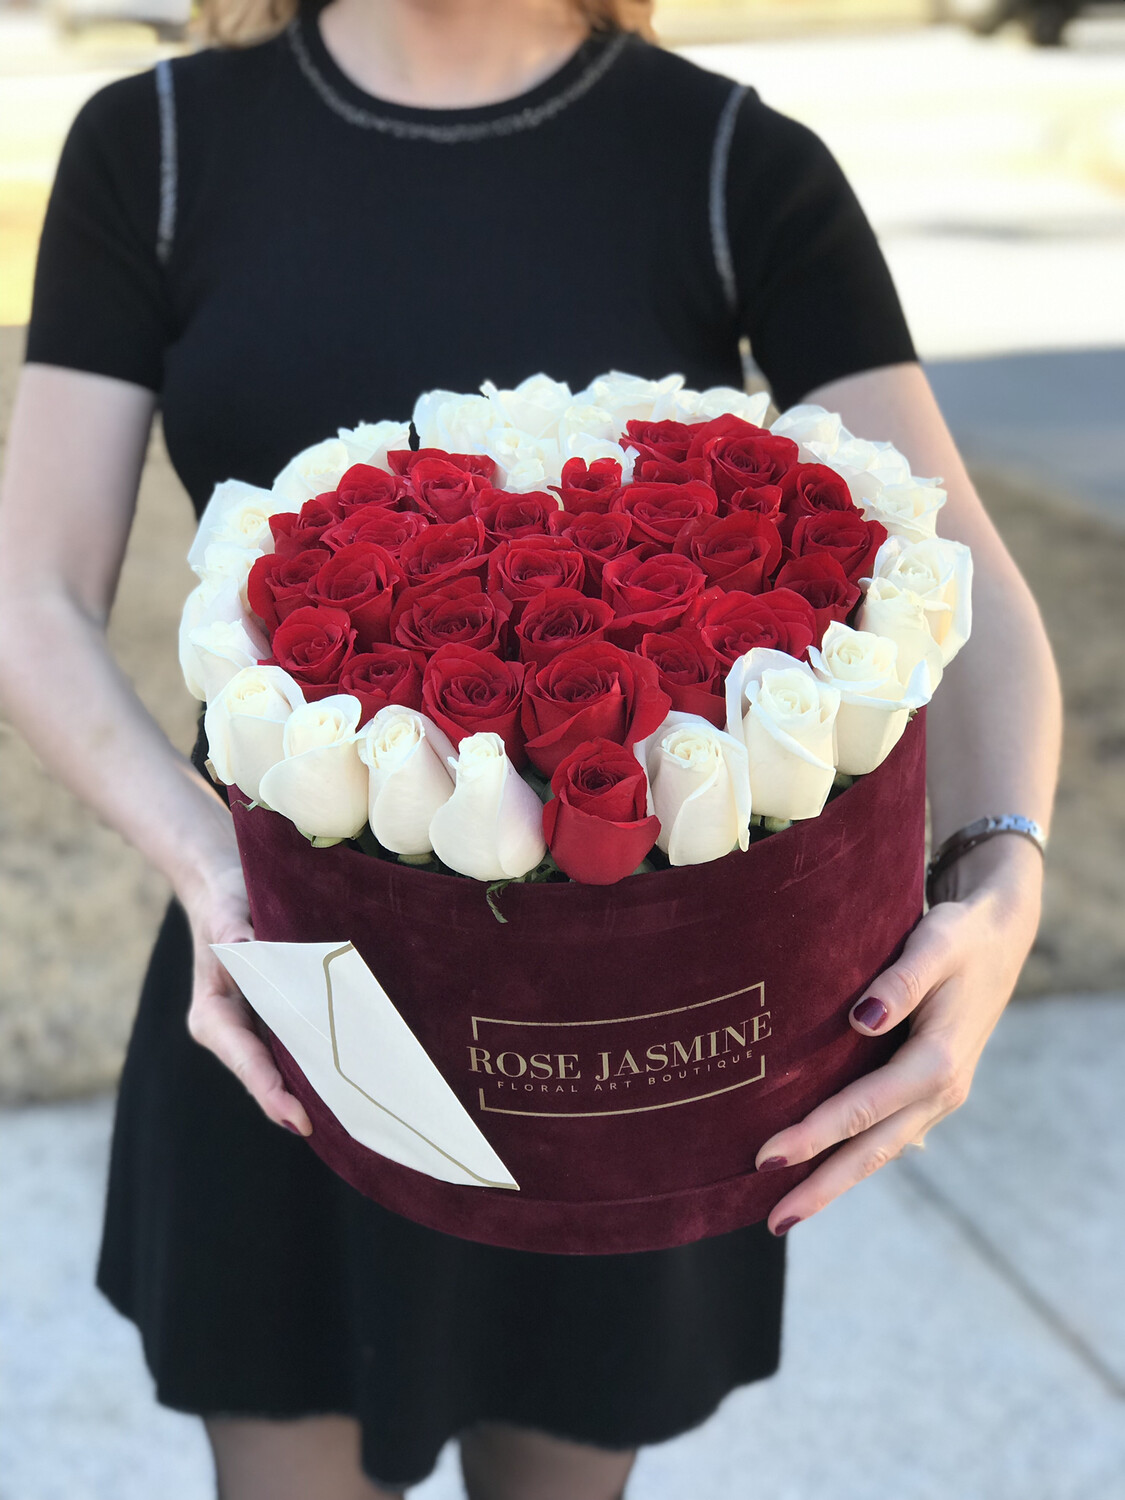 Love is in the air (Up To 4 Dozen Fresh Roses)